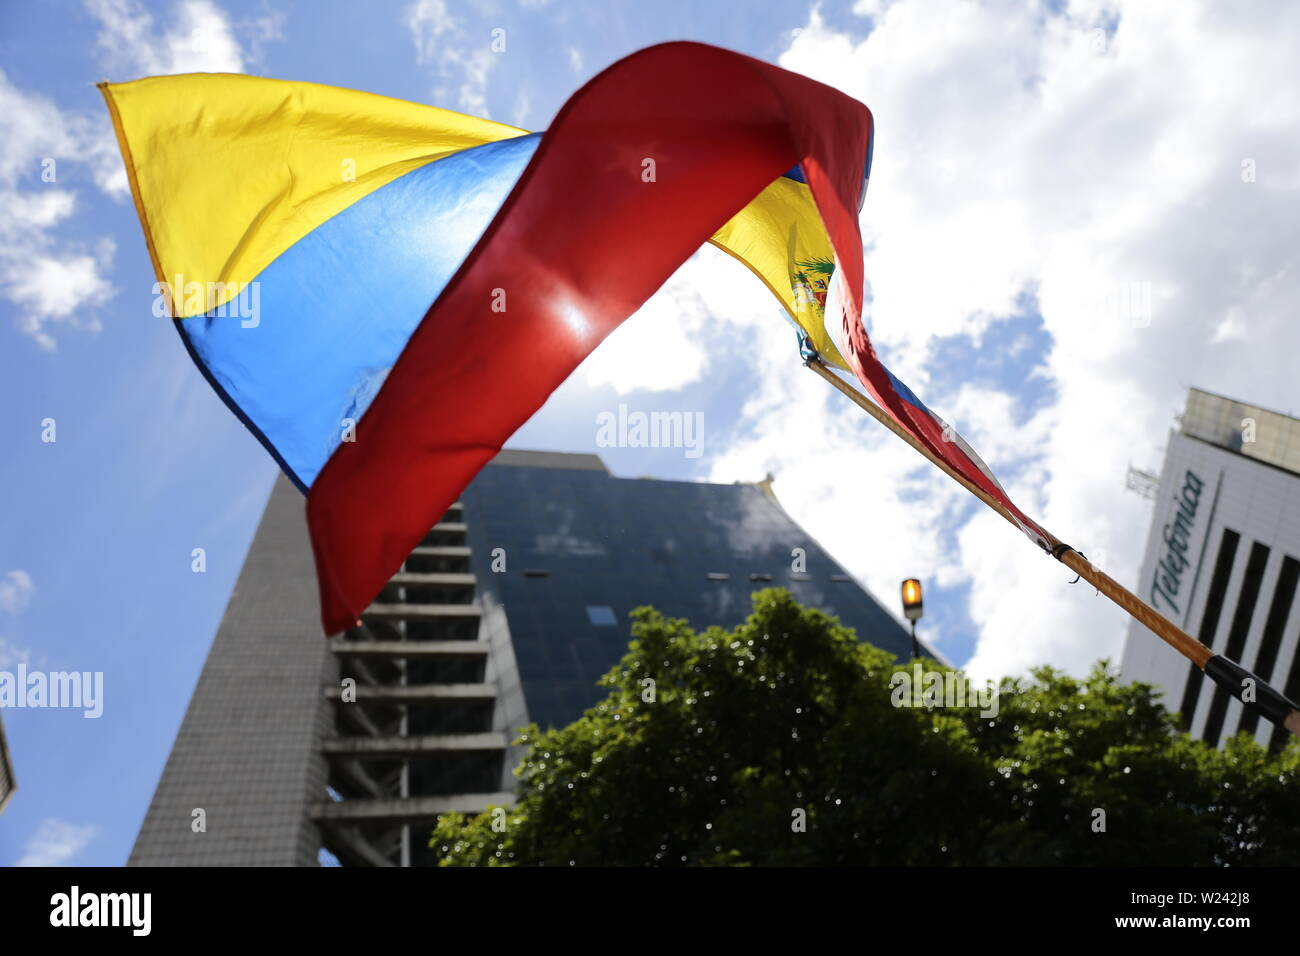 Caracas, Venezuela. 05th July, 2019. The Venezuelan flag is flying in front of the headquarters of the United Nations Development Programme (UNDP) in the Venezuelan capital. The opposition leader and self-appointed interim president Guaido had called on civil society to protest against the government of head of state Maduro. Venezuela commemorates on July 5 the independence of Spain in 1811. Credit: Rafael Hernandez/dpa/Alamy Live News - Stock Image